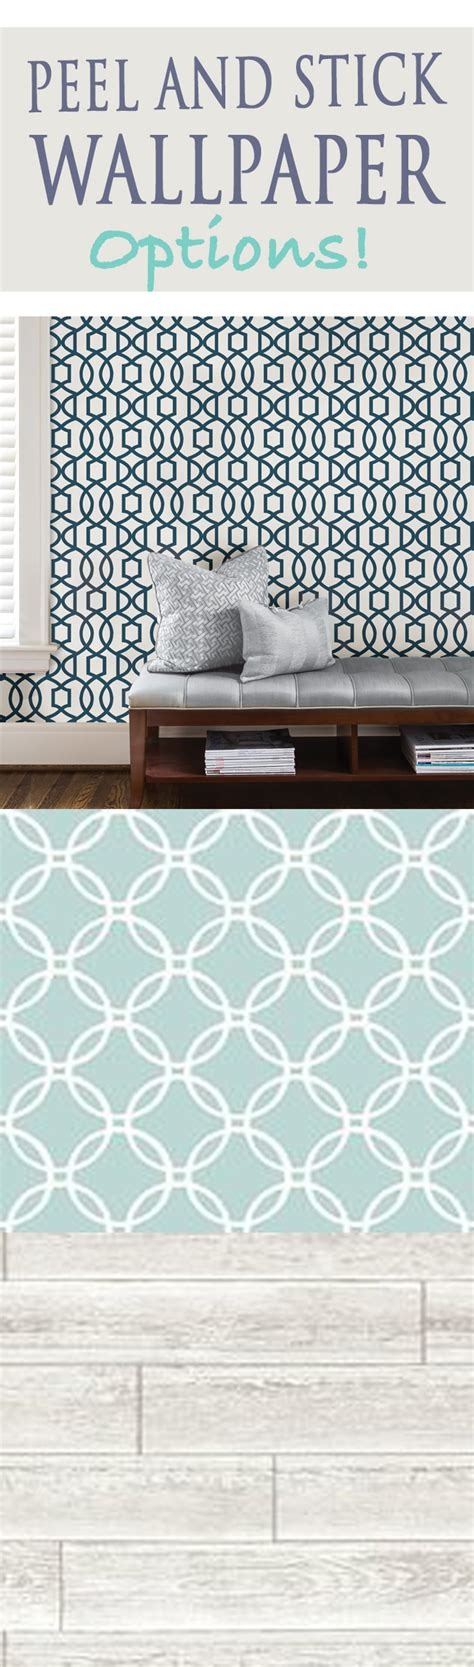 Peel And Stick Wallpaper | peel and stick wallpaper options removable and repositionable